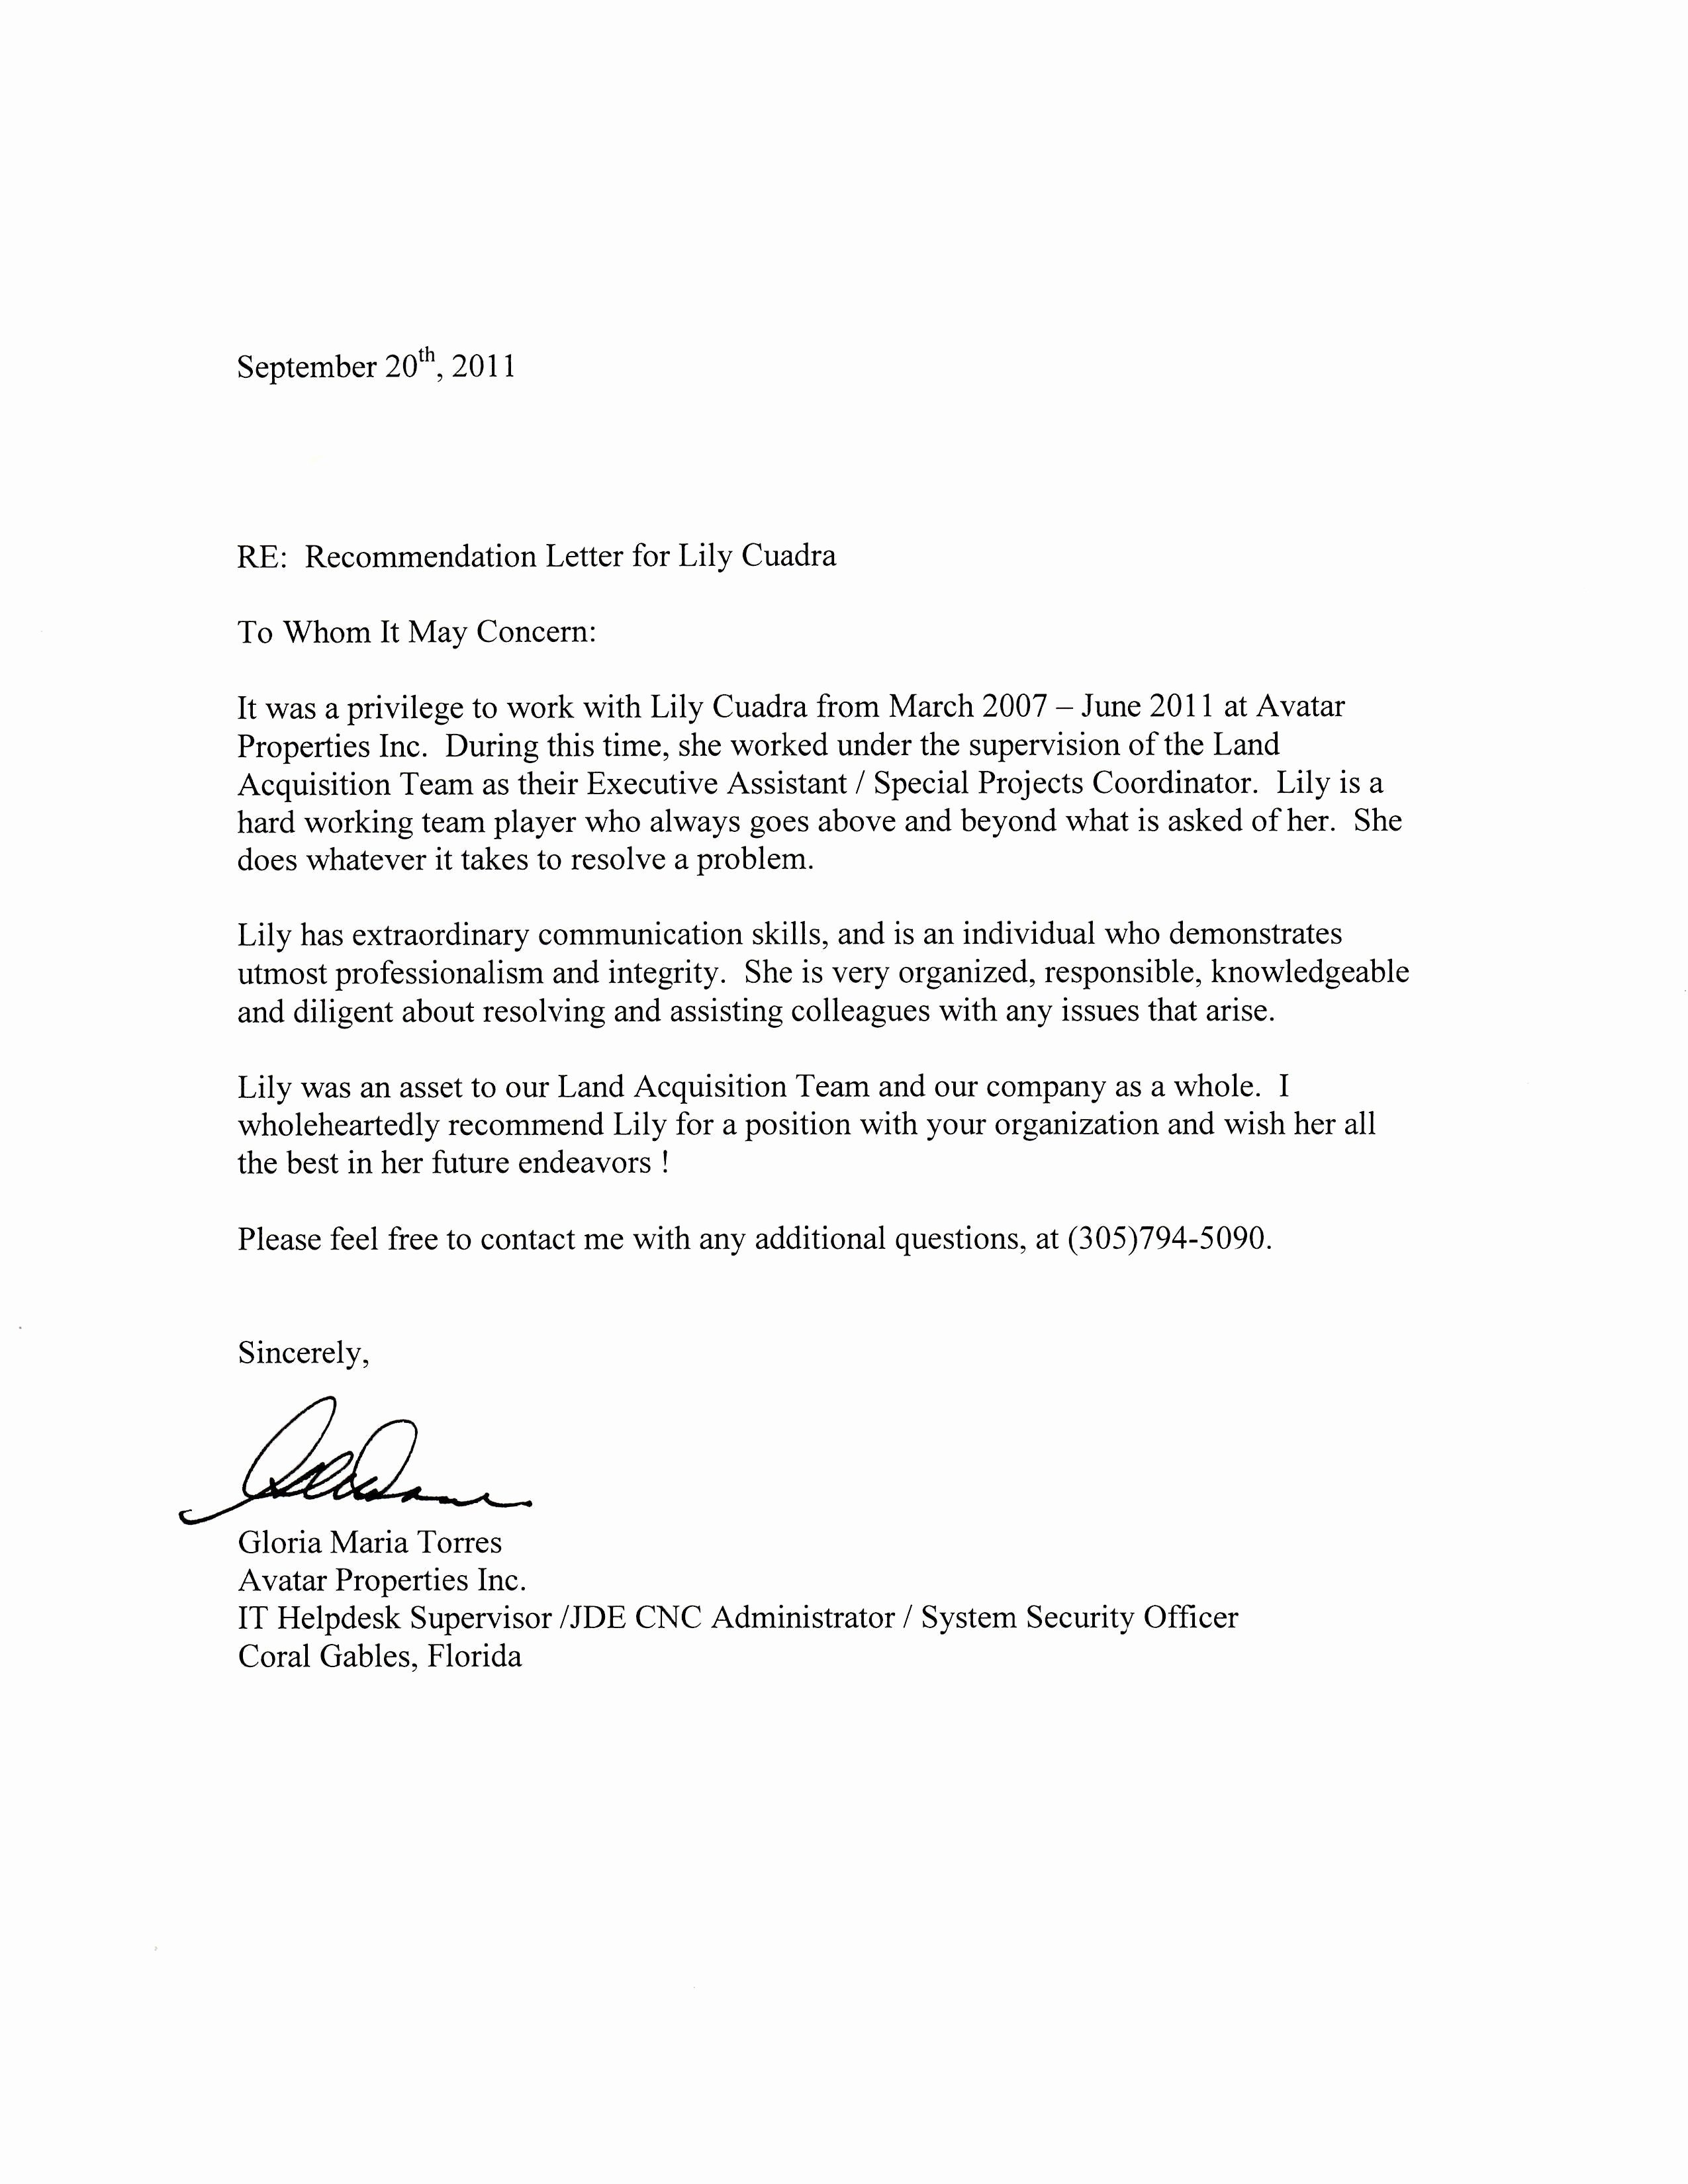 Sample Job Reference Letters Awesome Simple Guide Professional Reference Letter with Samples